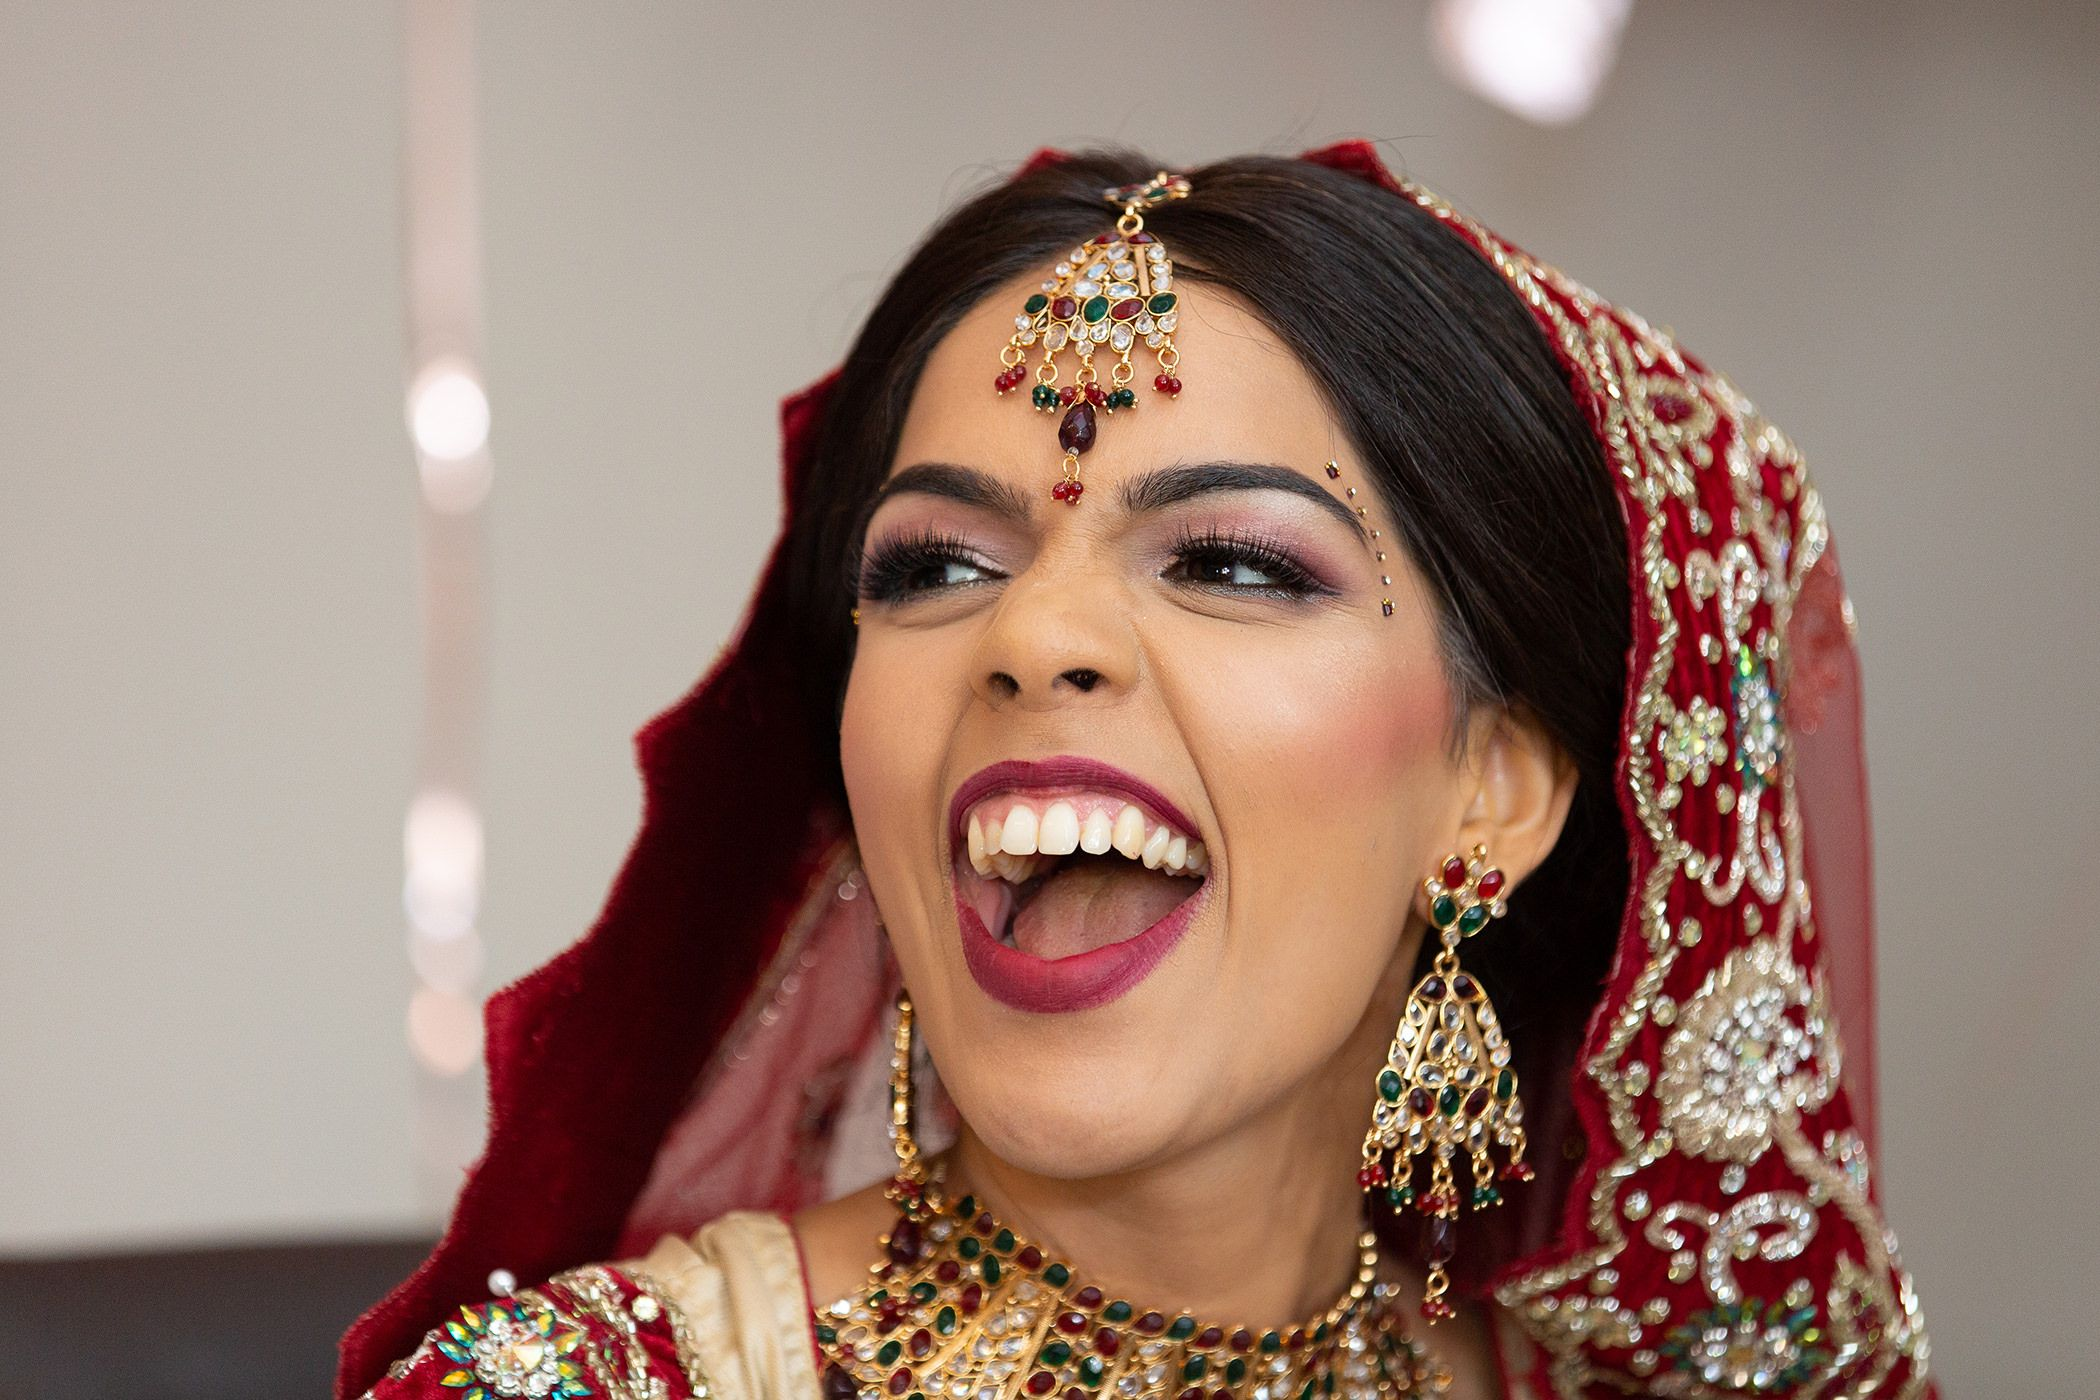 Sonya Indian Bride having fun